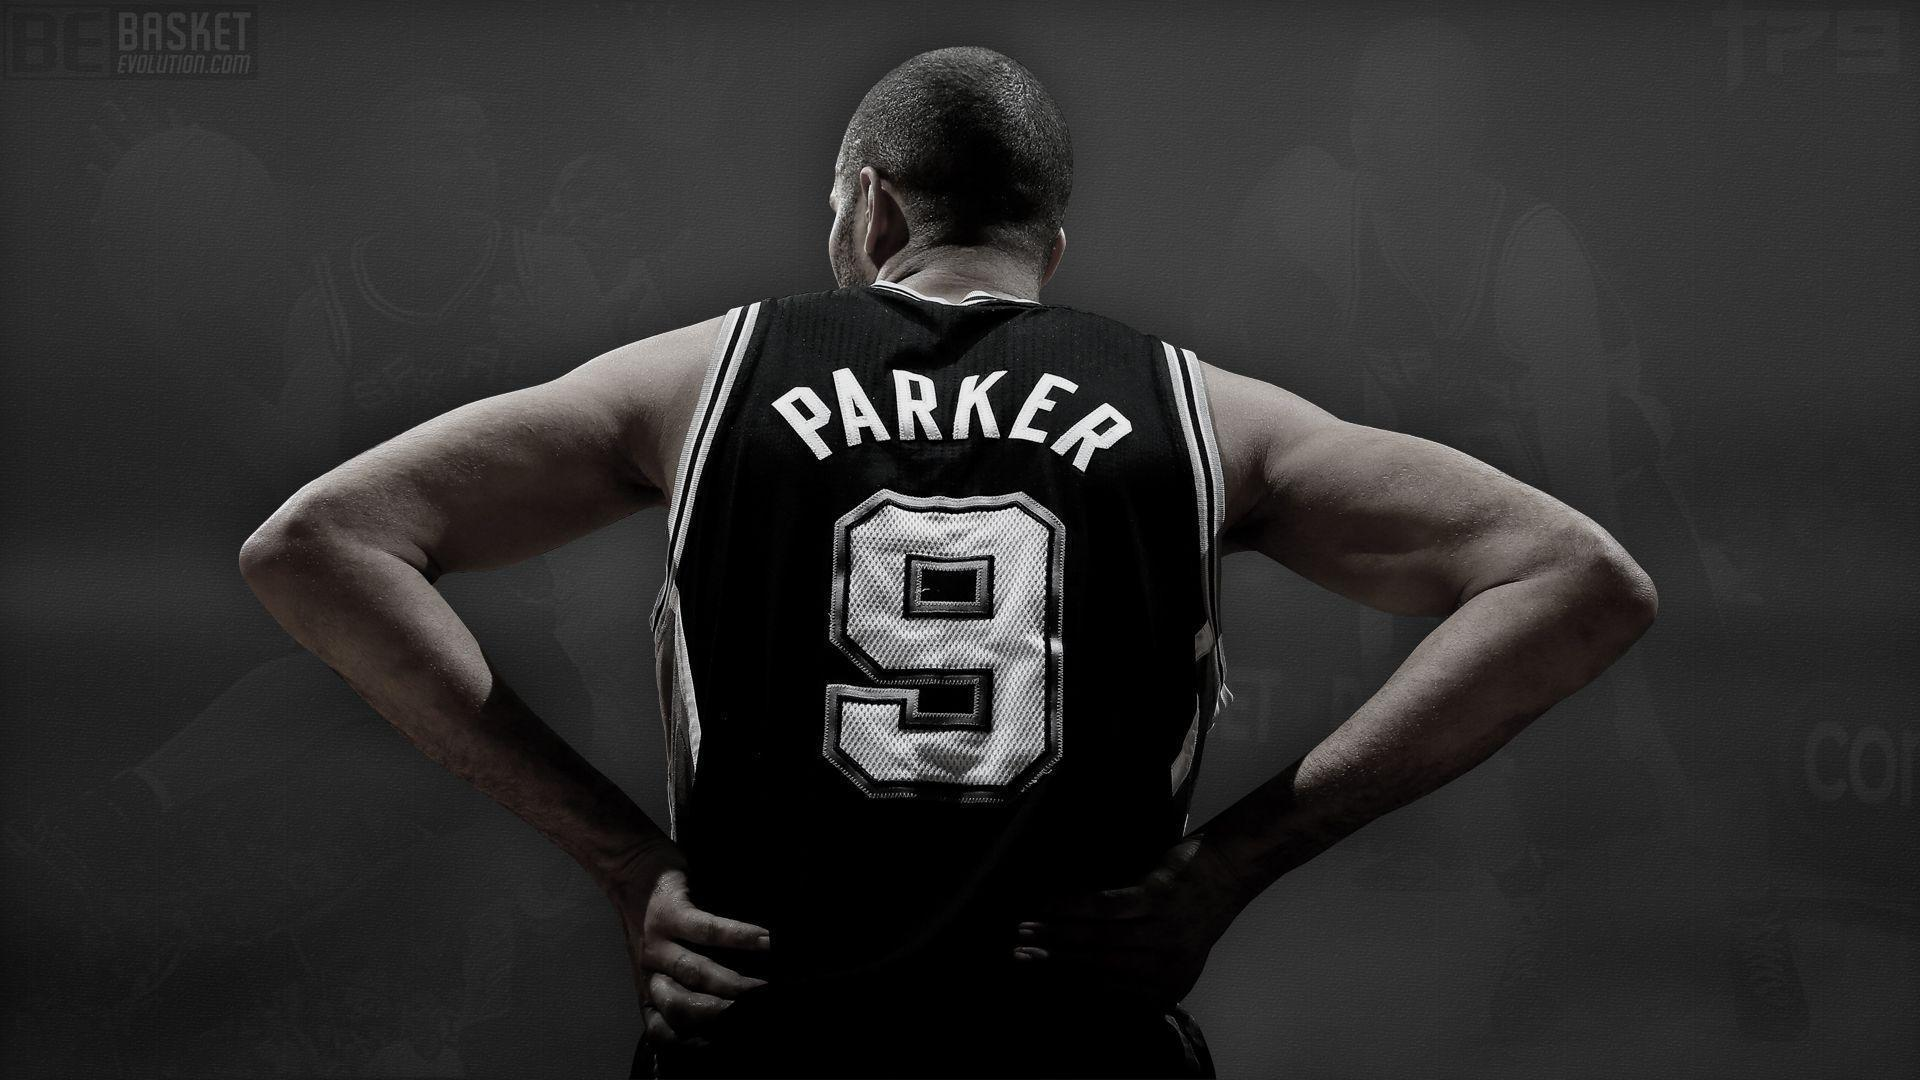 1920x1080 Tony Parker Wallpapers for Android - APK Download